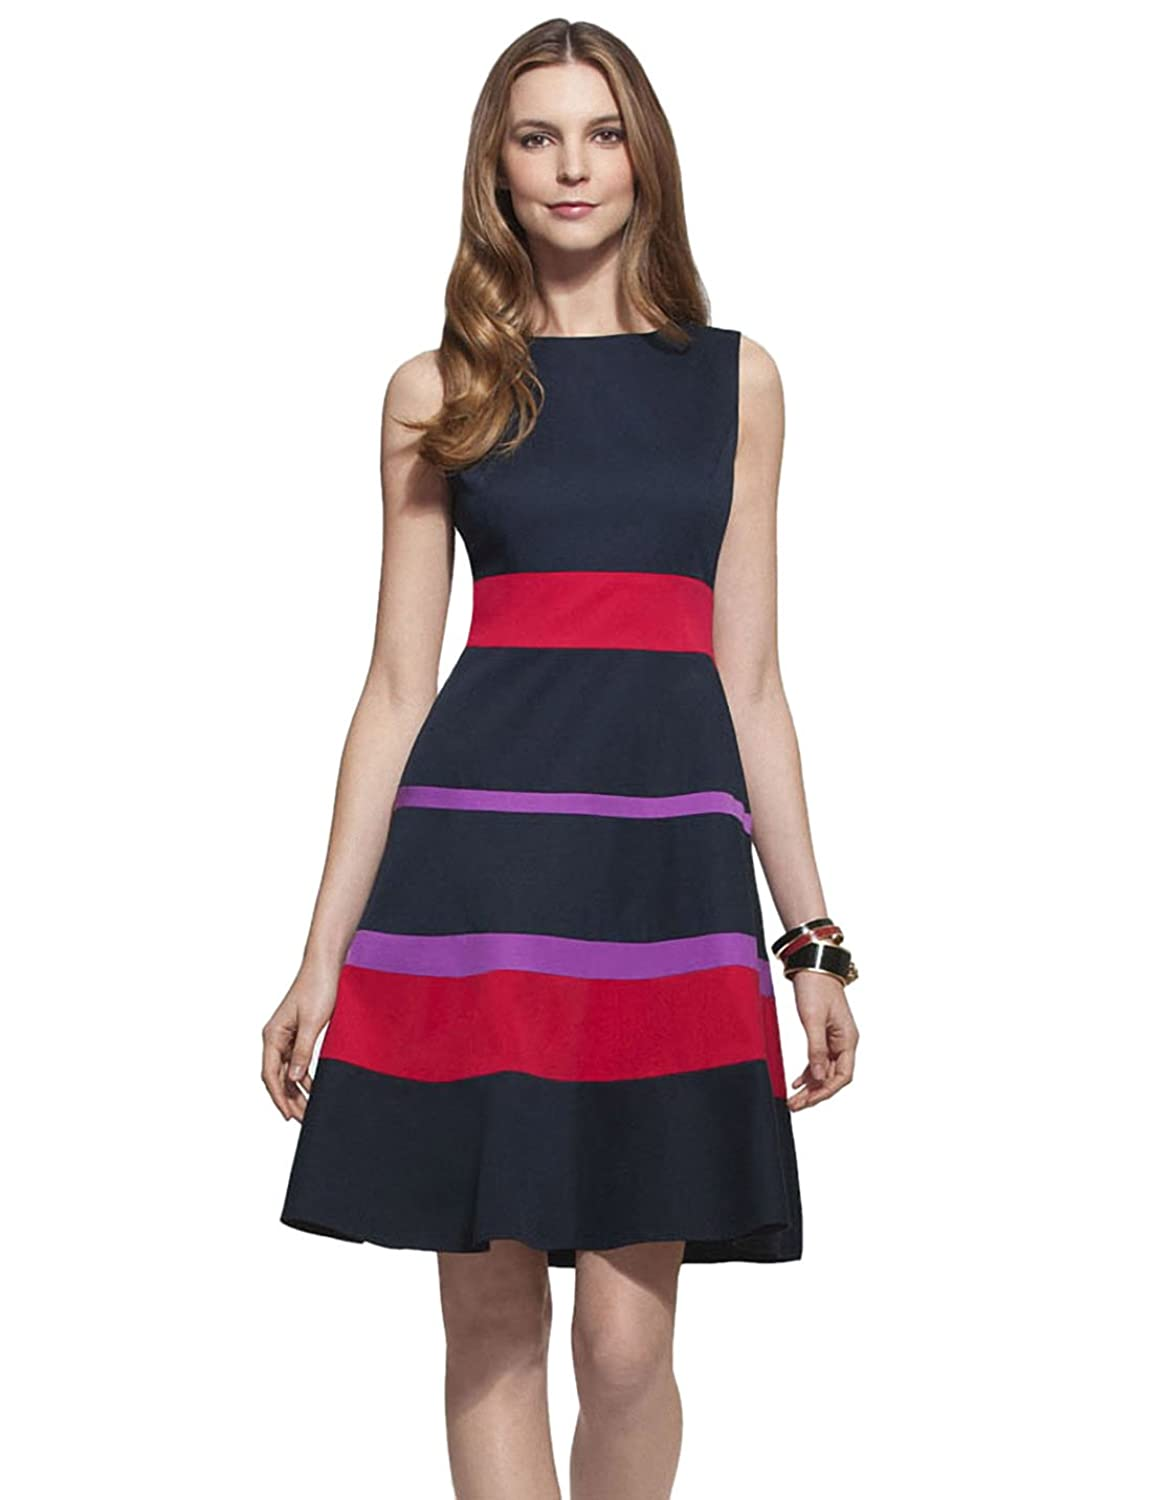 YACUN Women Splice Stripe Color Block Casual Party Fit and Flare Dress